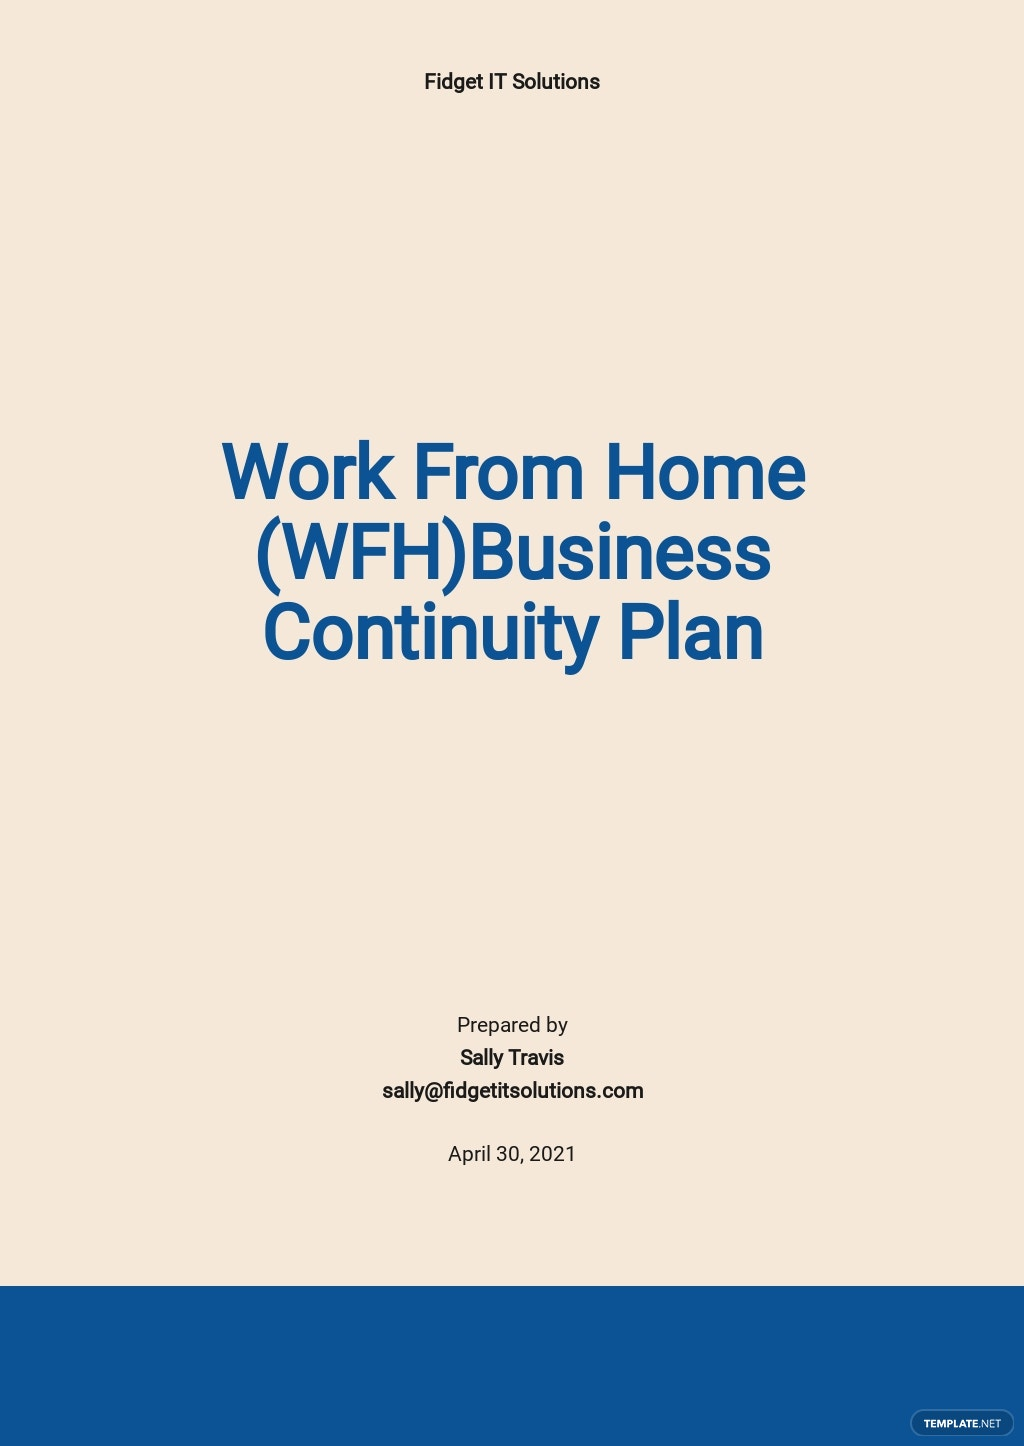 Work From Home Business Continuity Plan Template